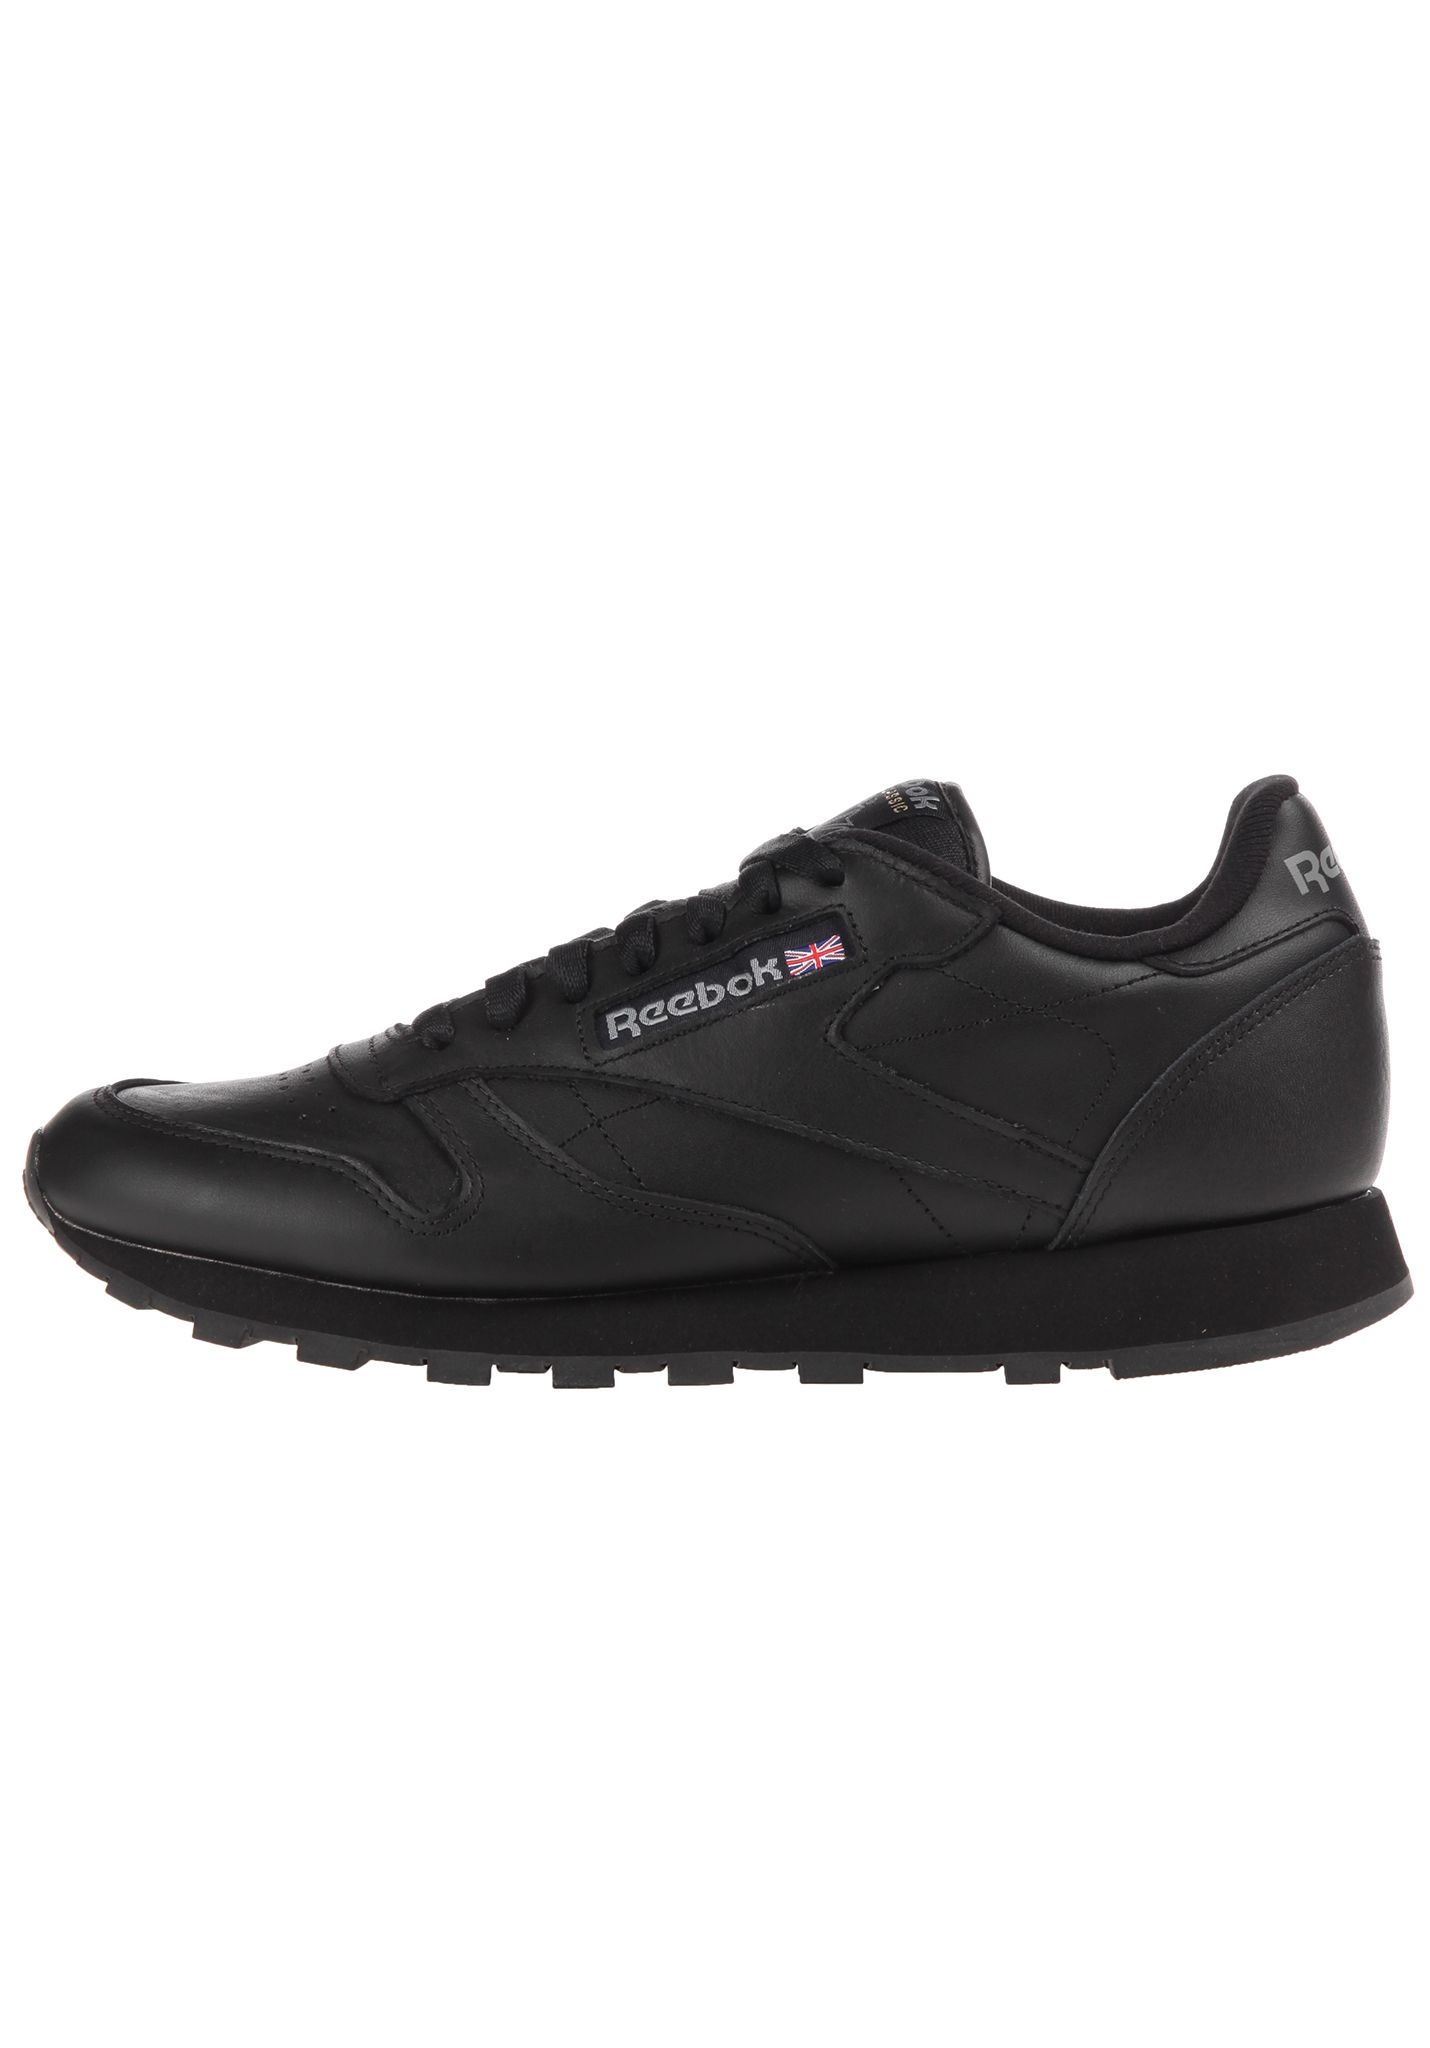 reebok classic lthr herren sneaker turnschuhe freizeit schuhe sneakers ebay. Black Bedroom Furniture Sets. Home Design Ideas